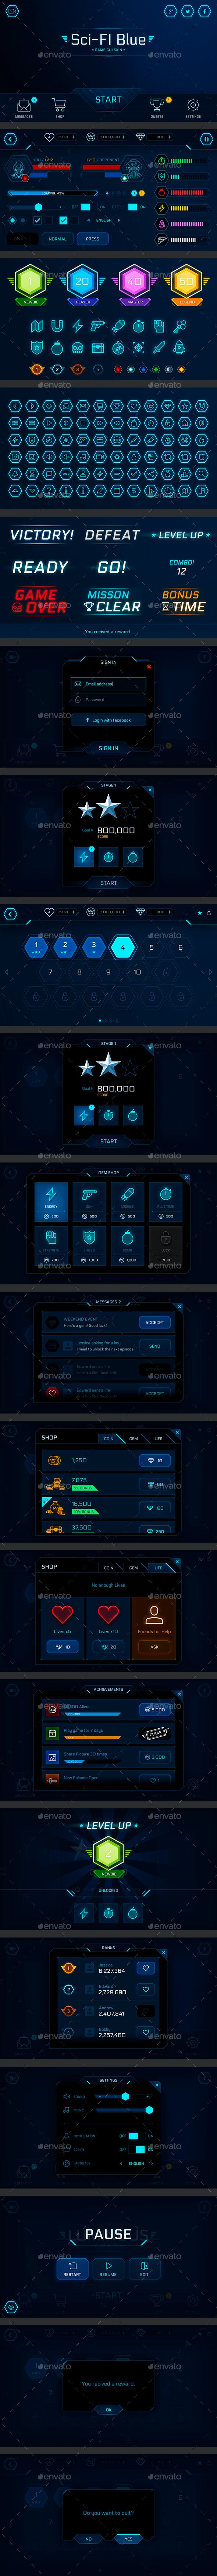 GUI Kit Sci-Fi Blue - User Interfaces Game Assets